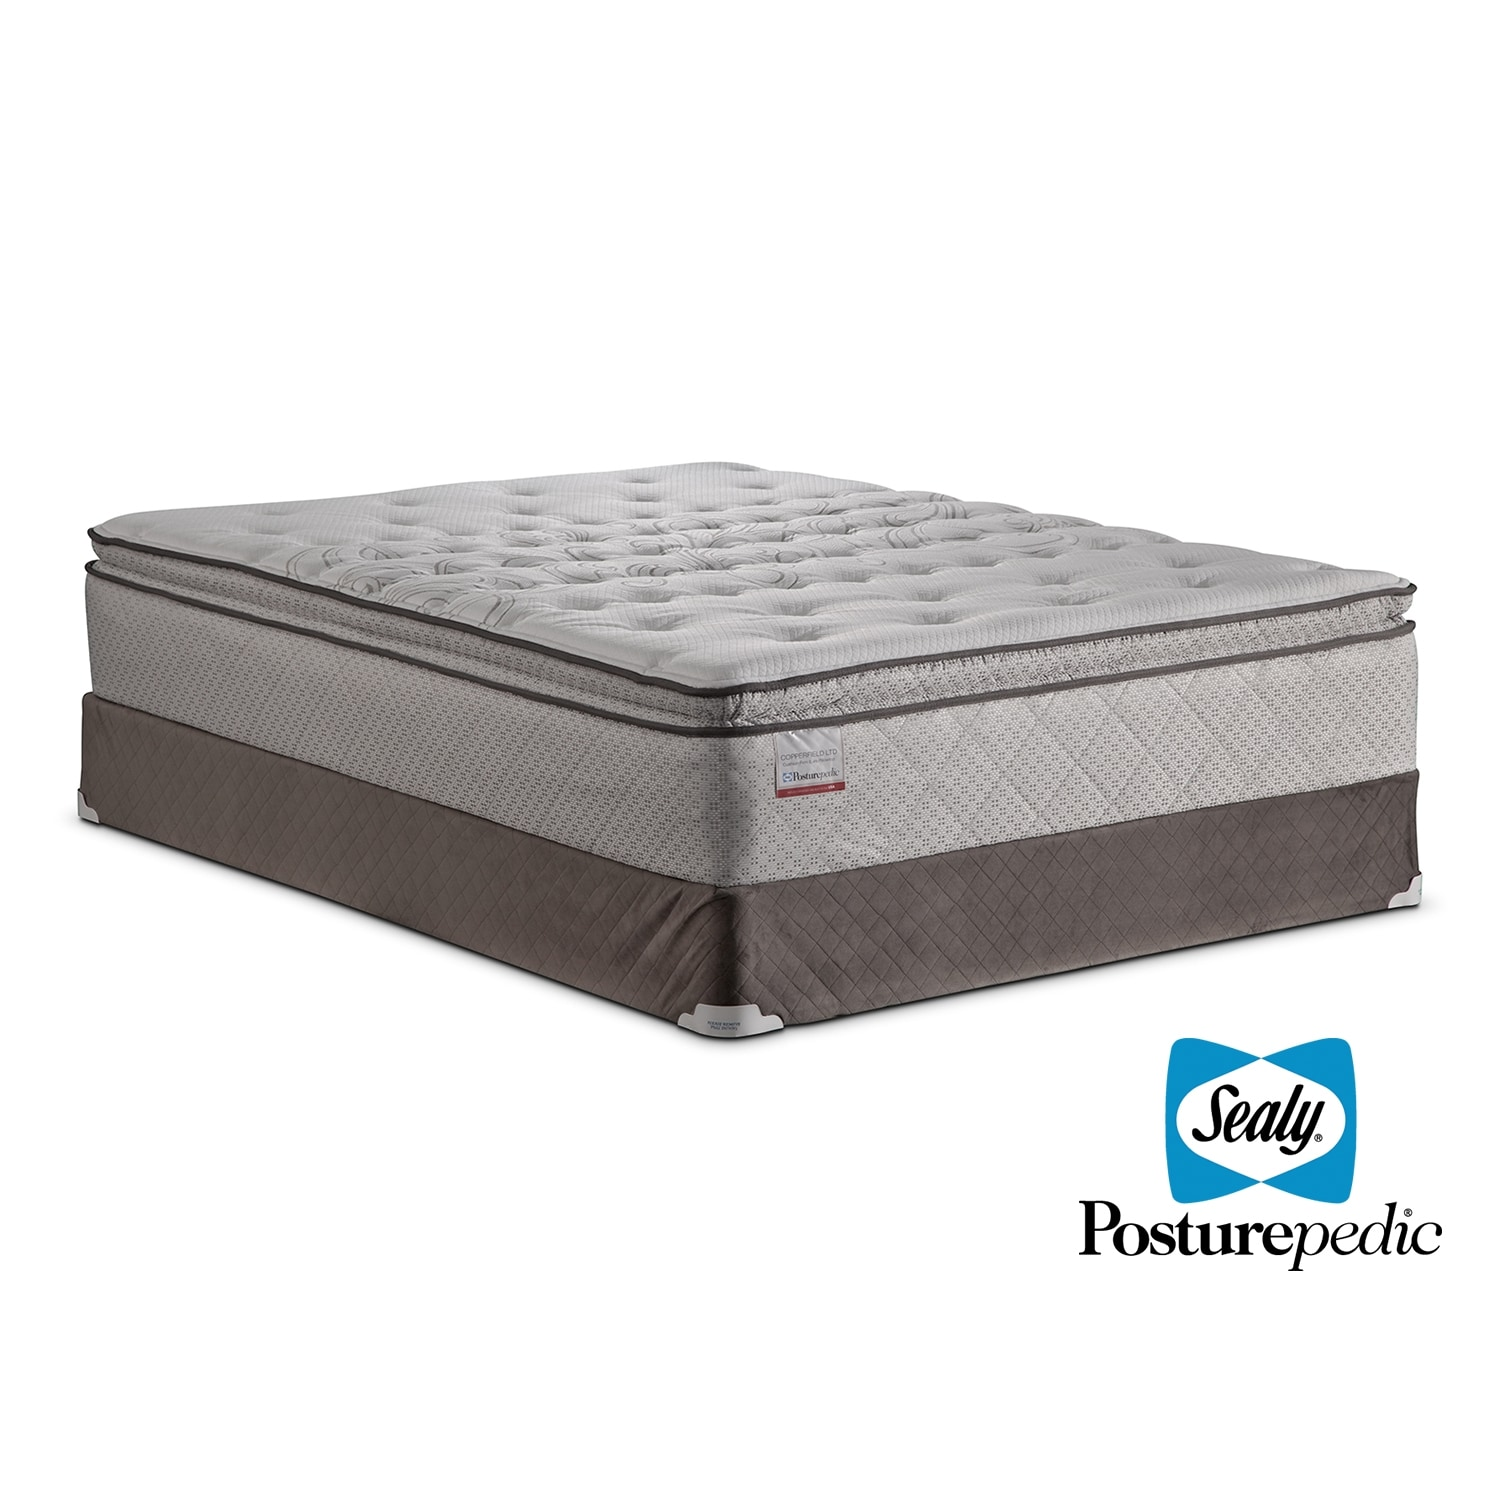 Mattresses and bedding dreams queen mattresssplit foundation set bed mattress sale Queen mattress sale